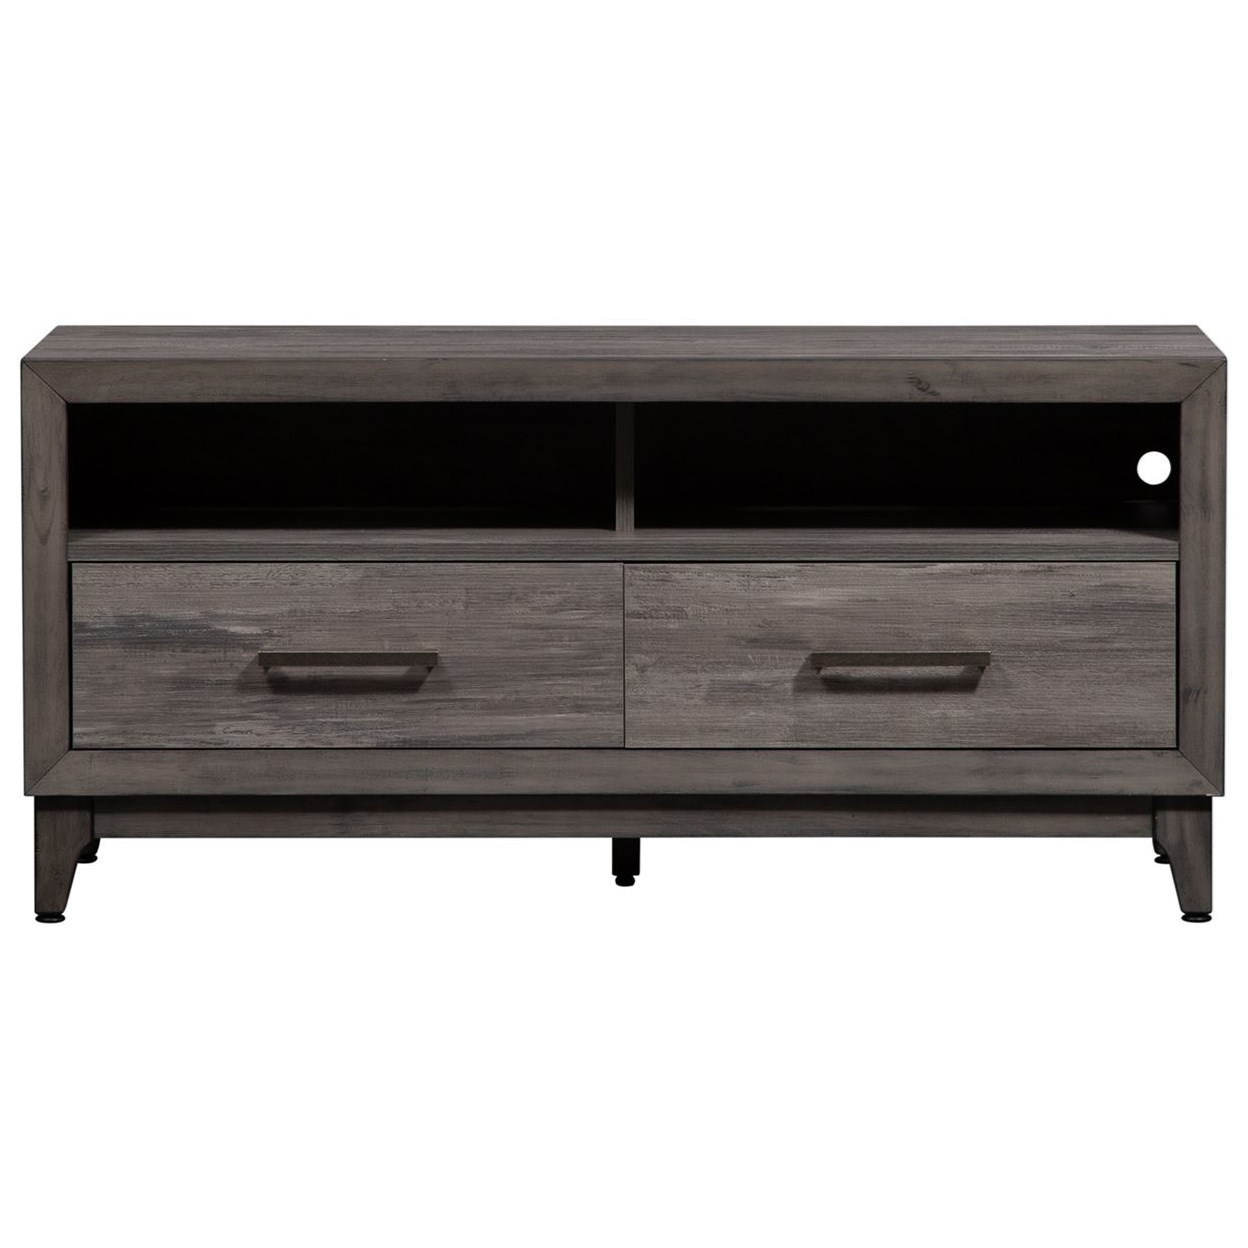 Mercury 47 Inch TV Console by Liberty Furniture at Northeast Factory Direct